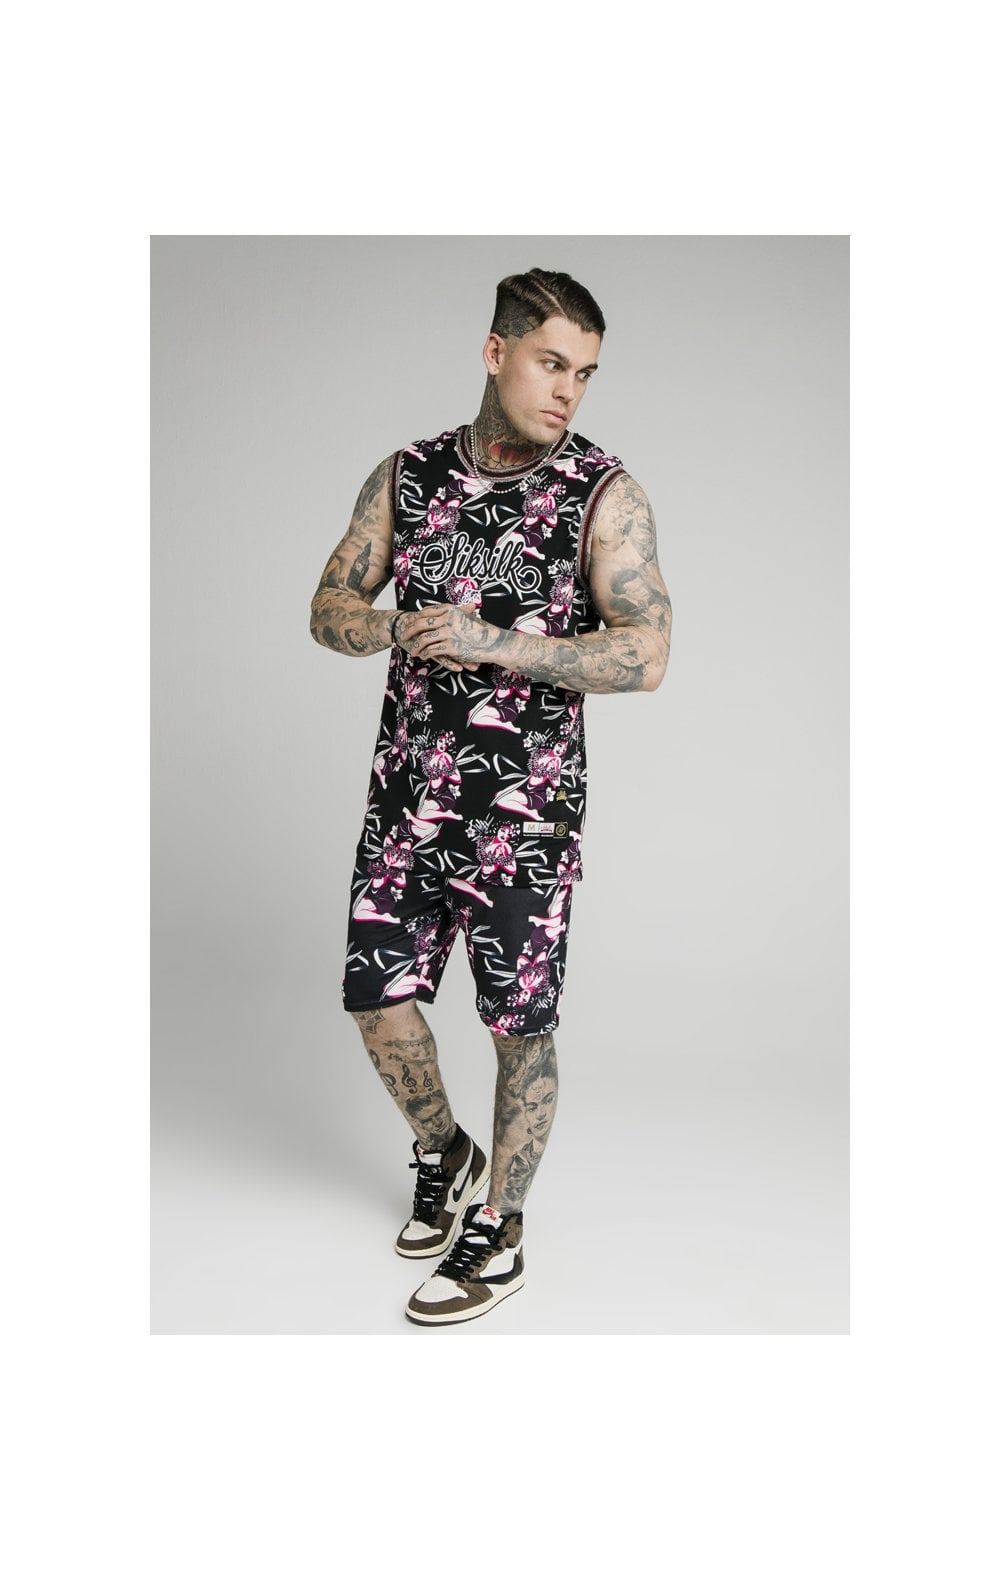 SikSilk Tropics Fitted Shorts - Black & Tropics (5)